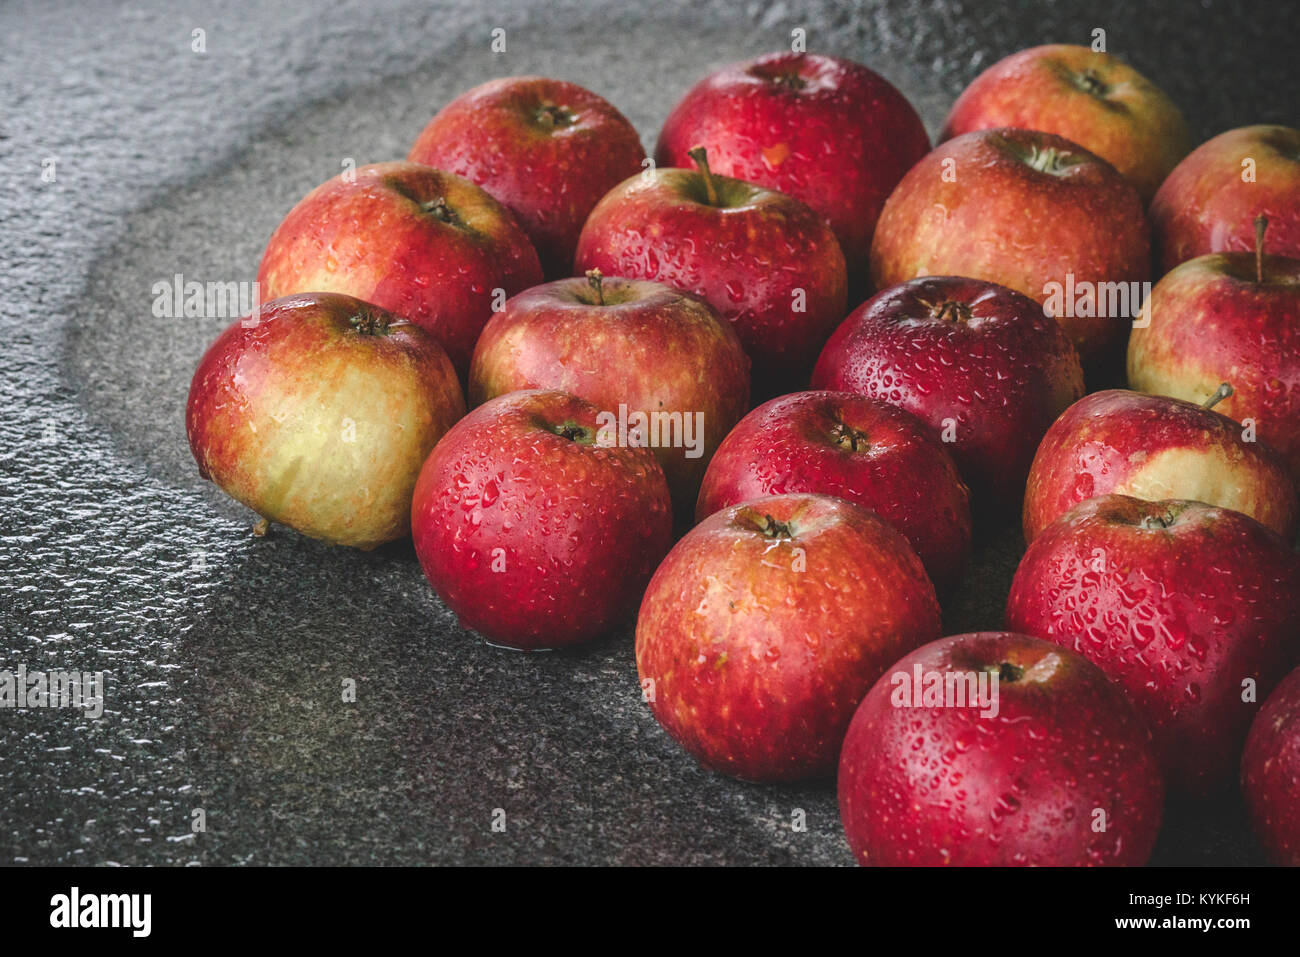 Wet apples on a granite rock in the rain in the fall in red colors with droplets - Stock Image